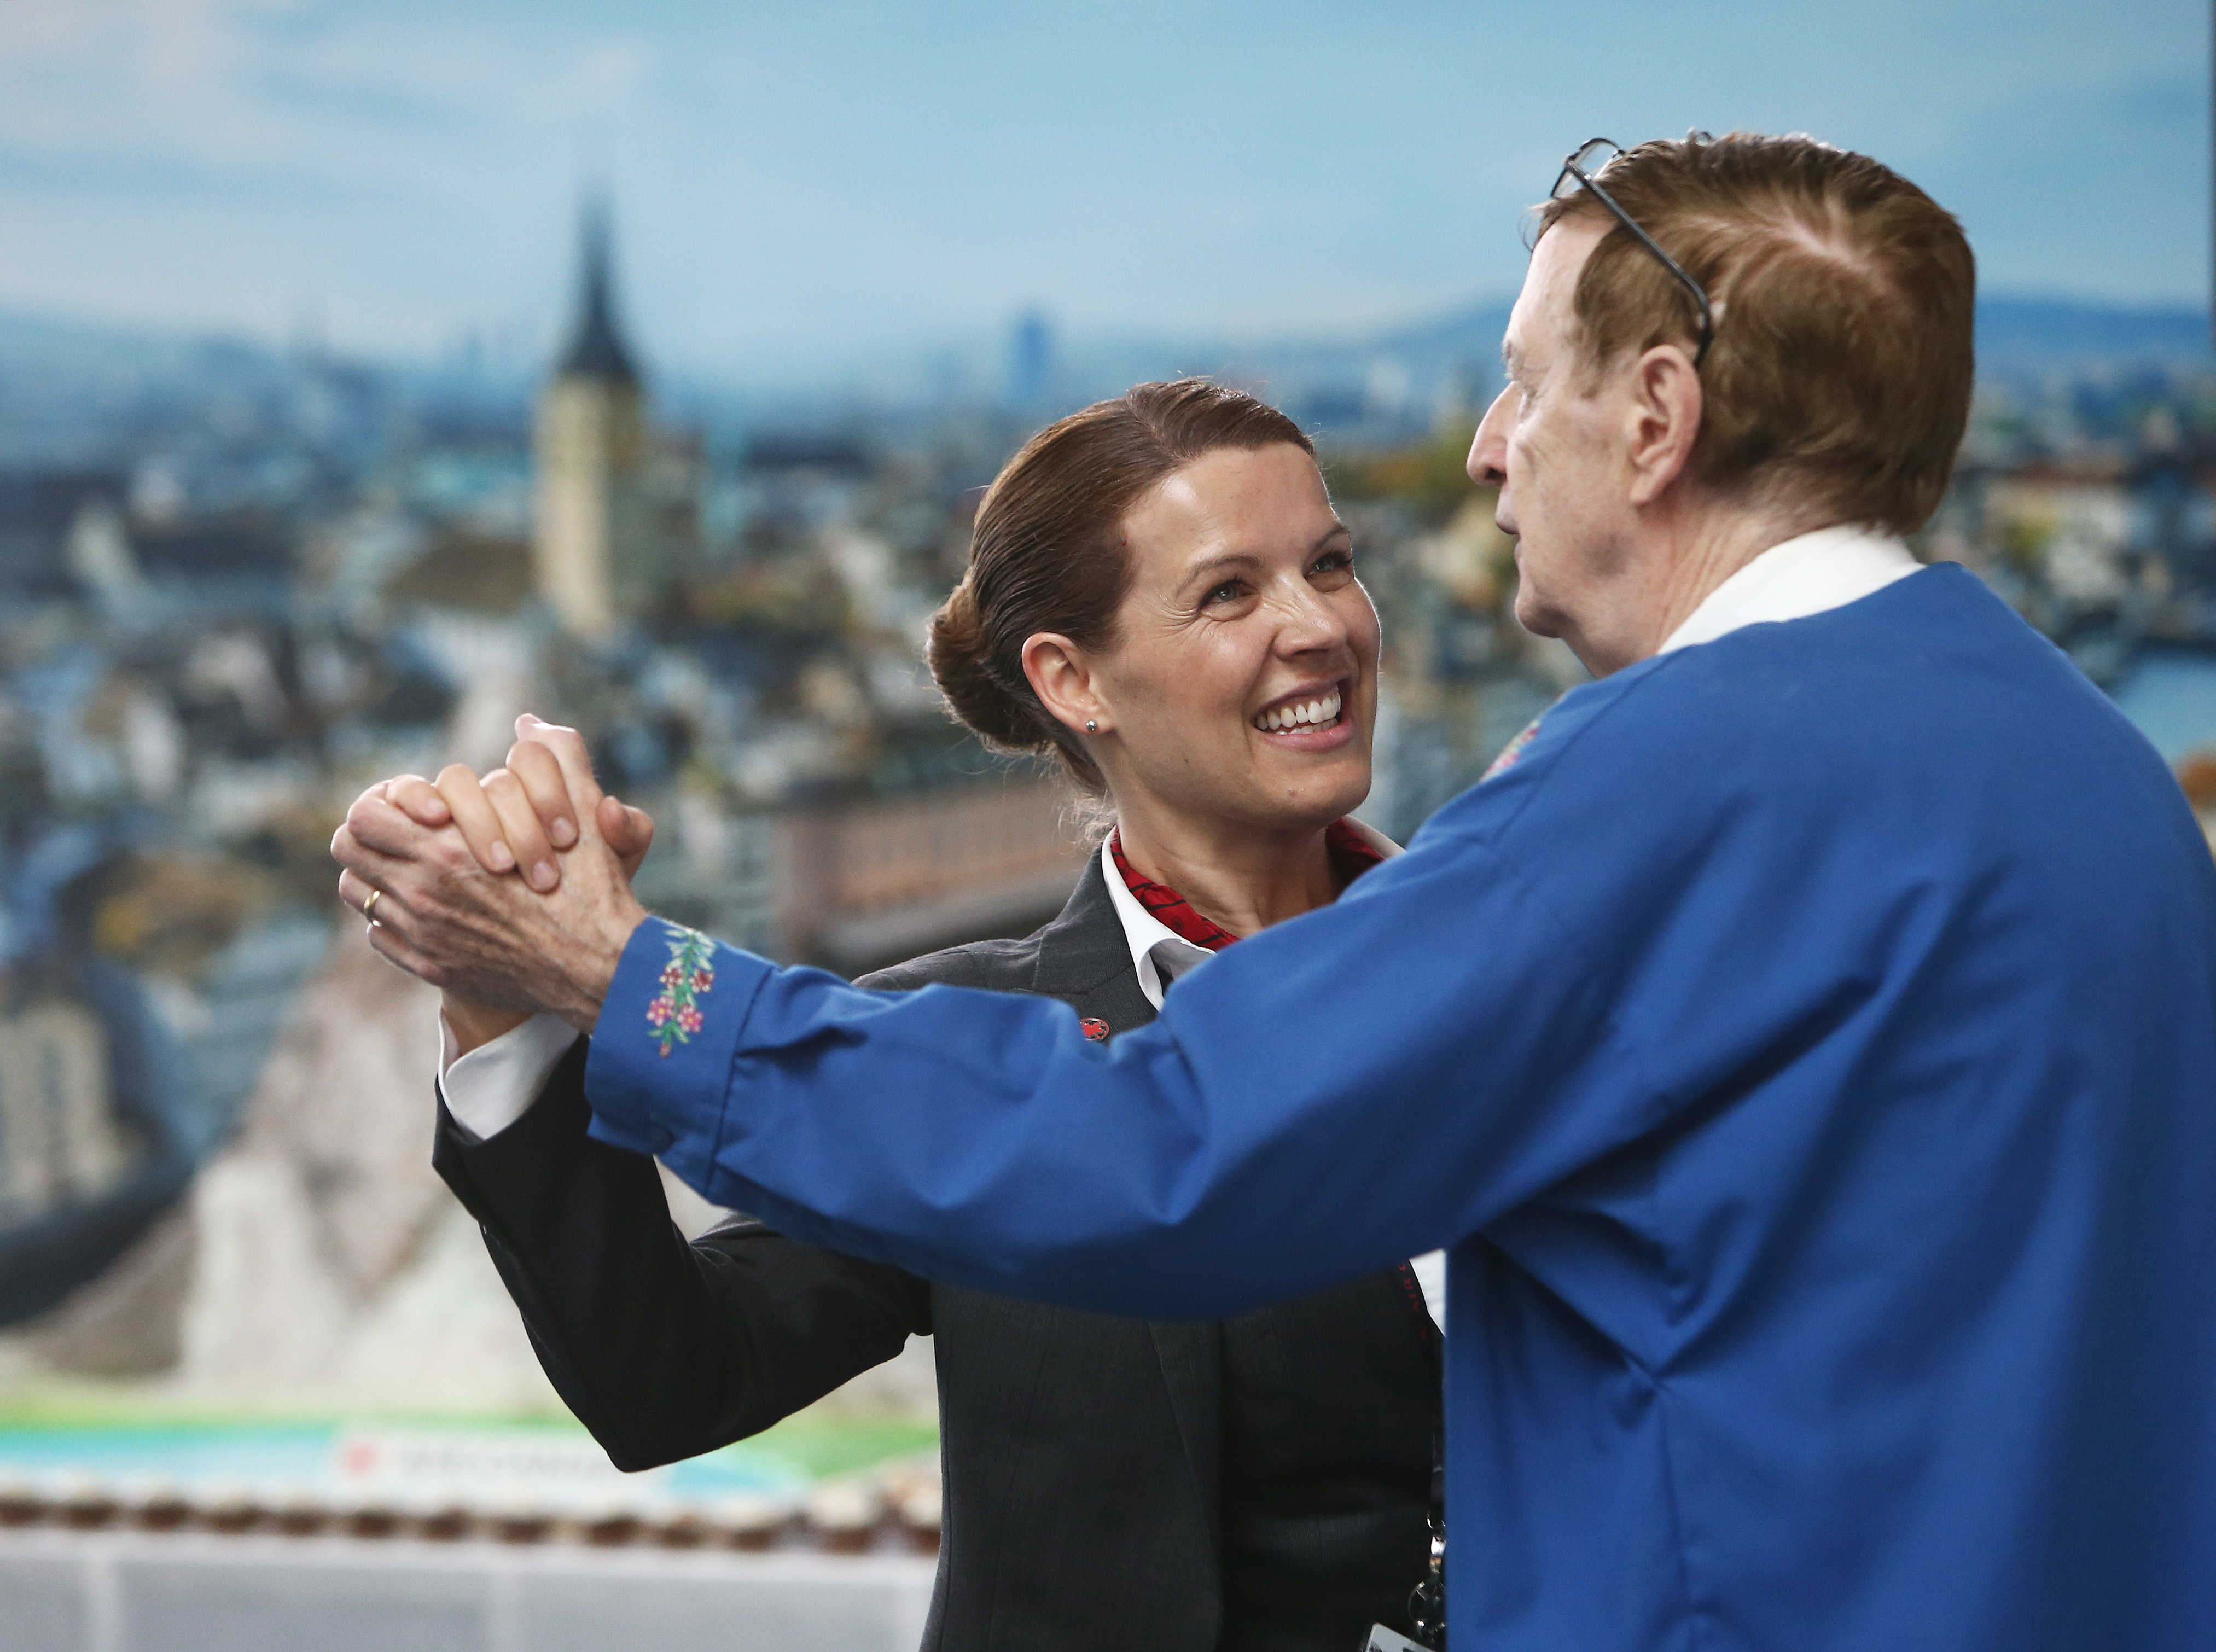 Air Canada flight attendant and a passenger dance together at the Zurich inaugural